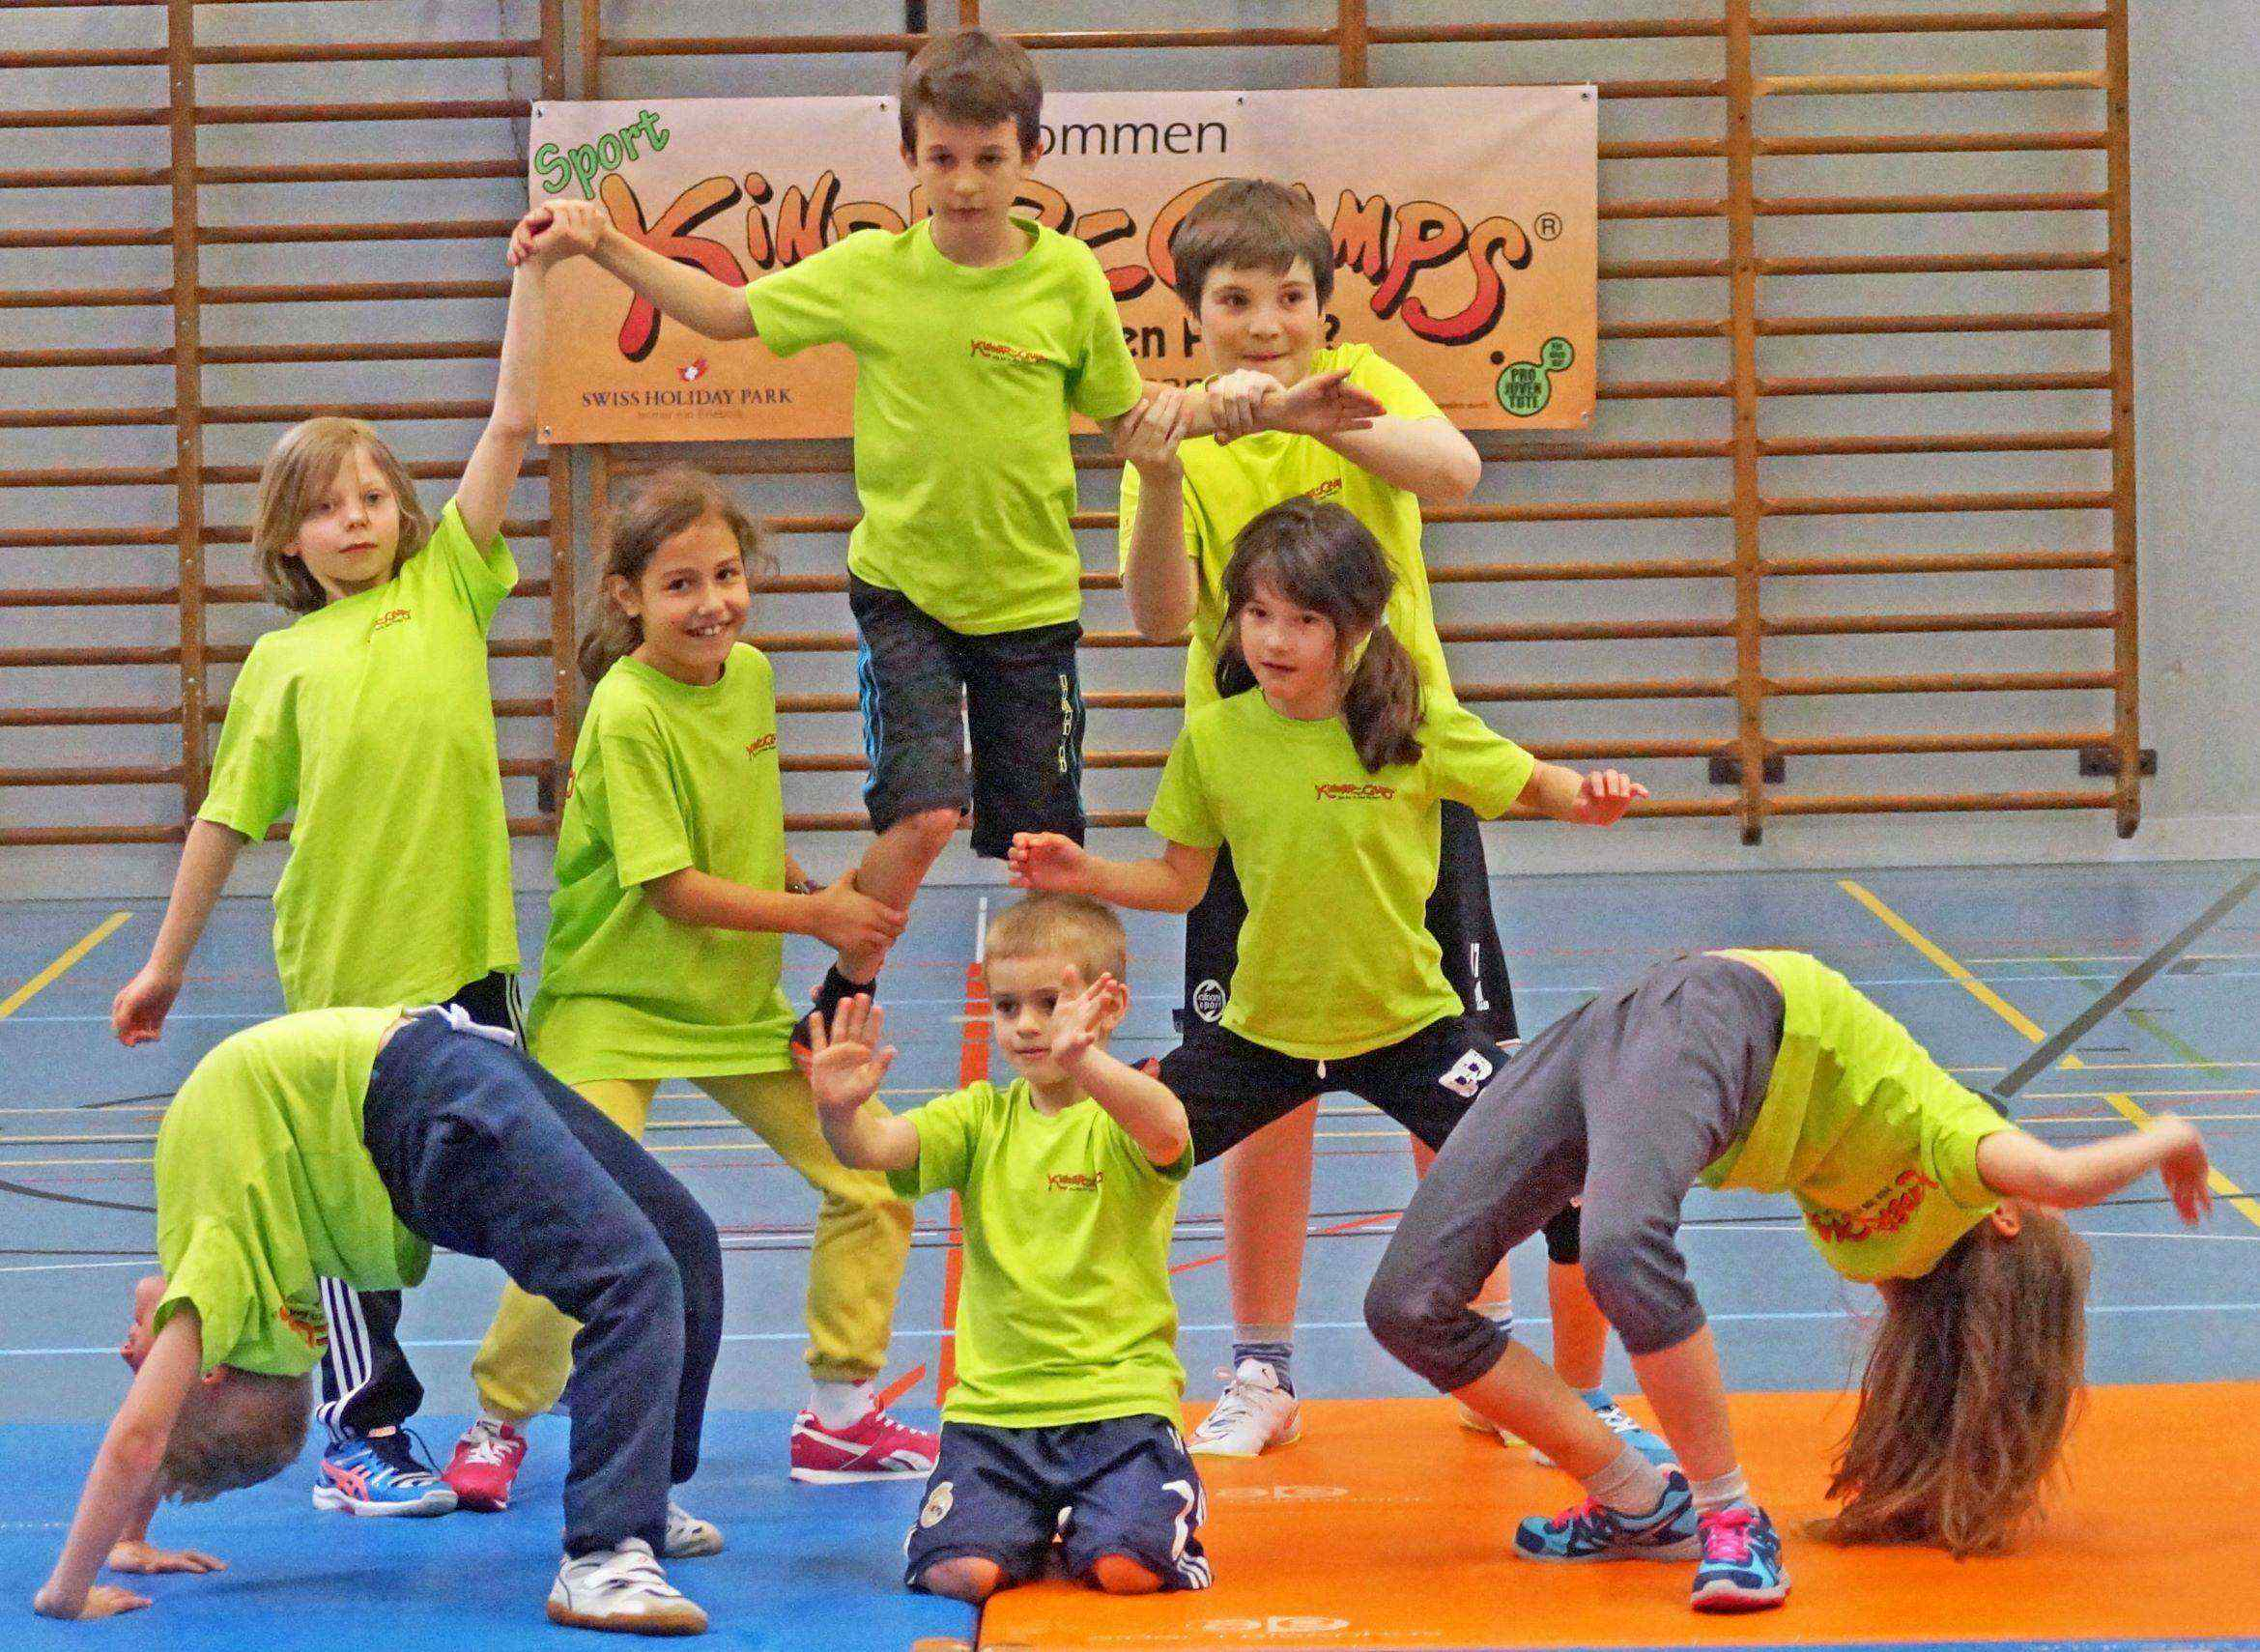 Verein Kinder-Camps